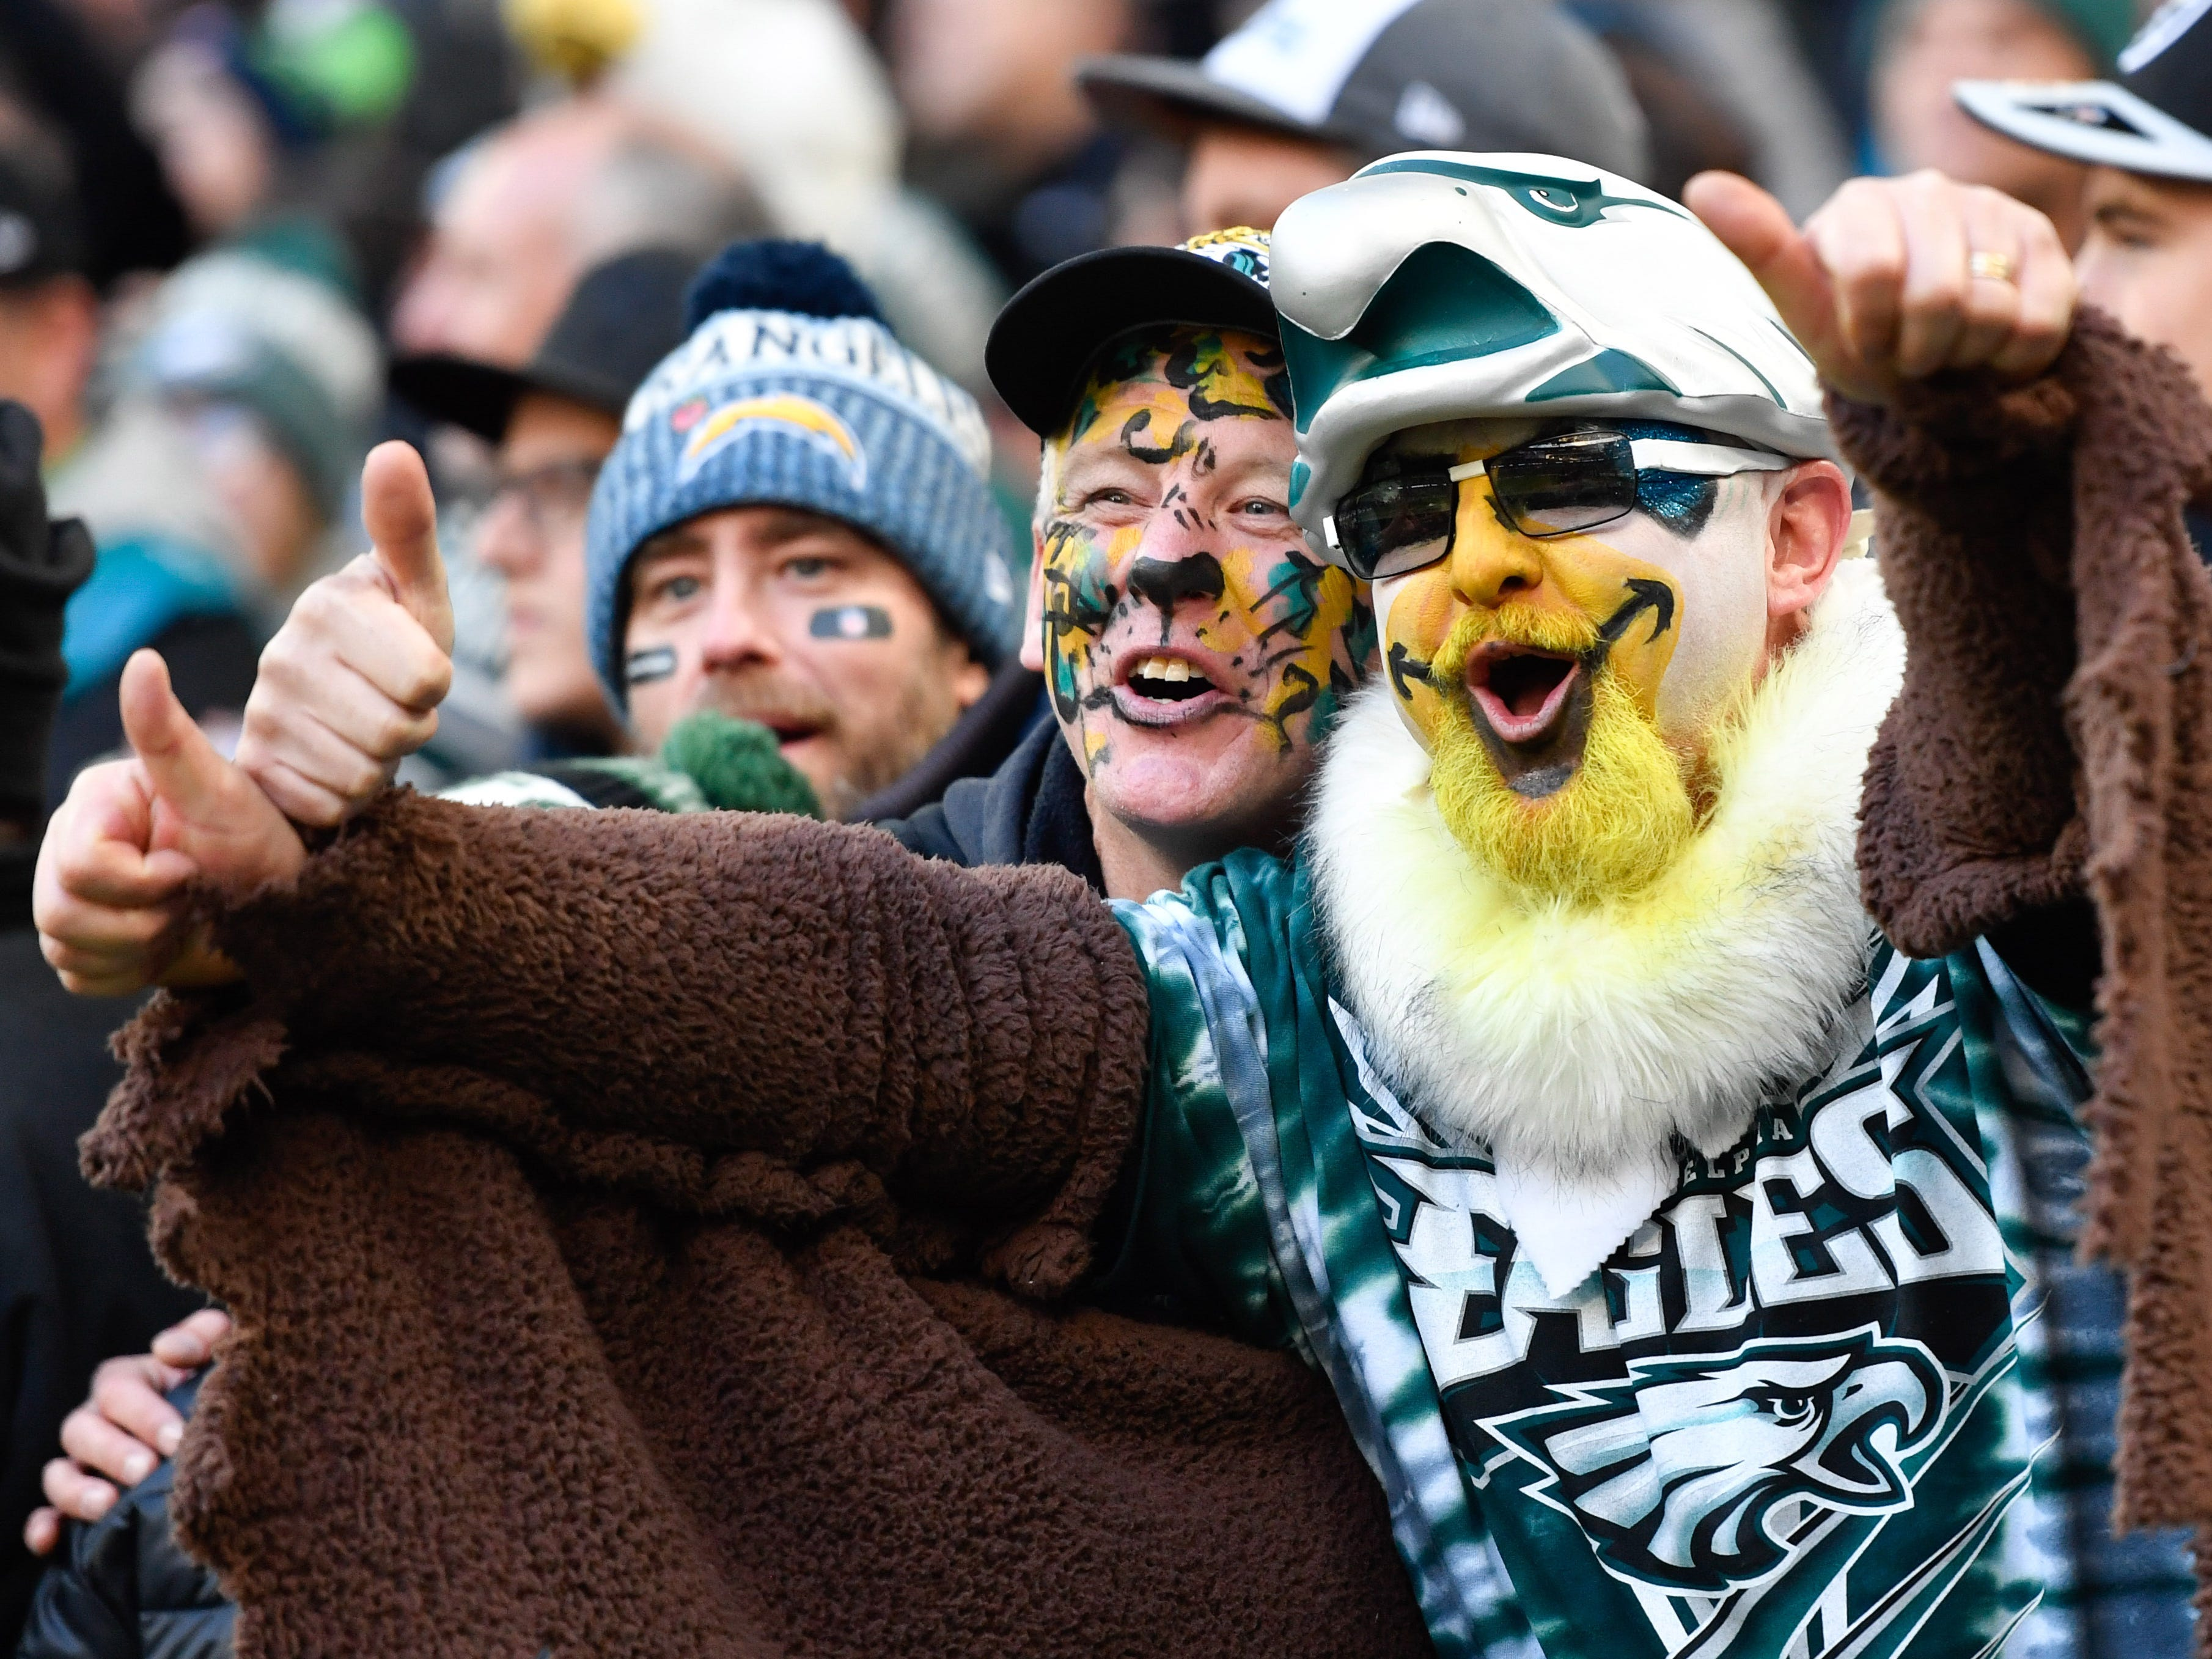 Philadelphia Eagles fans react during the second half of an NFL International Series game against the Jacksonville Jaguars at Wembley Stadium.